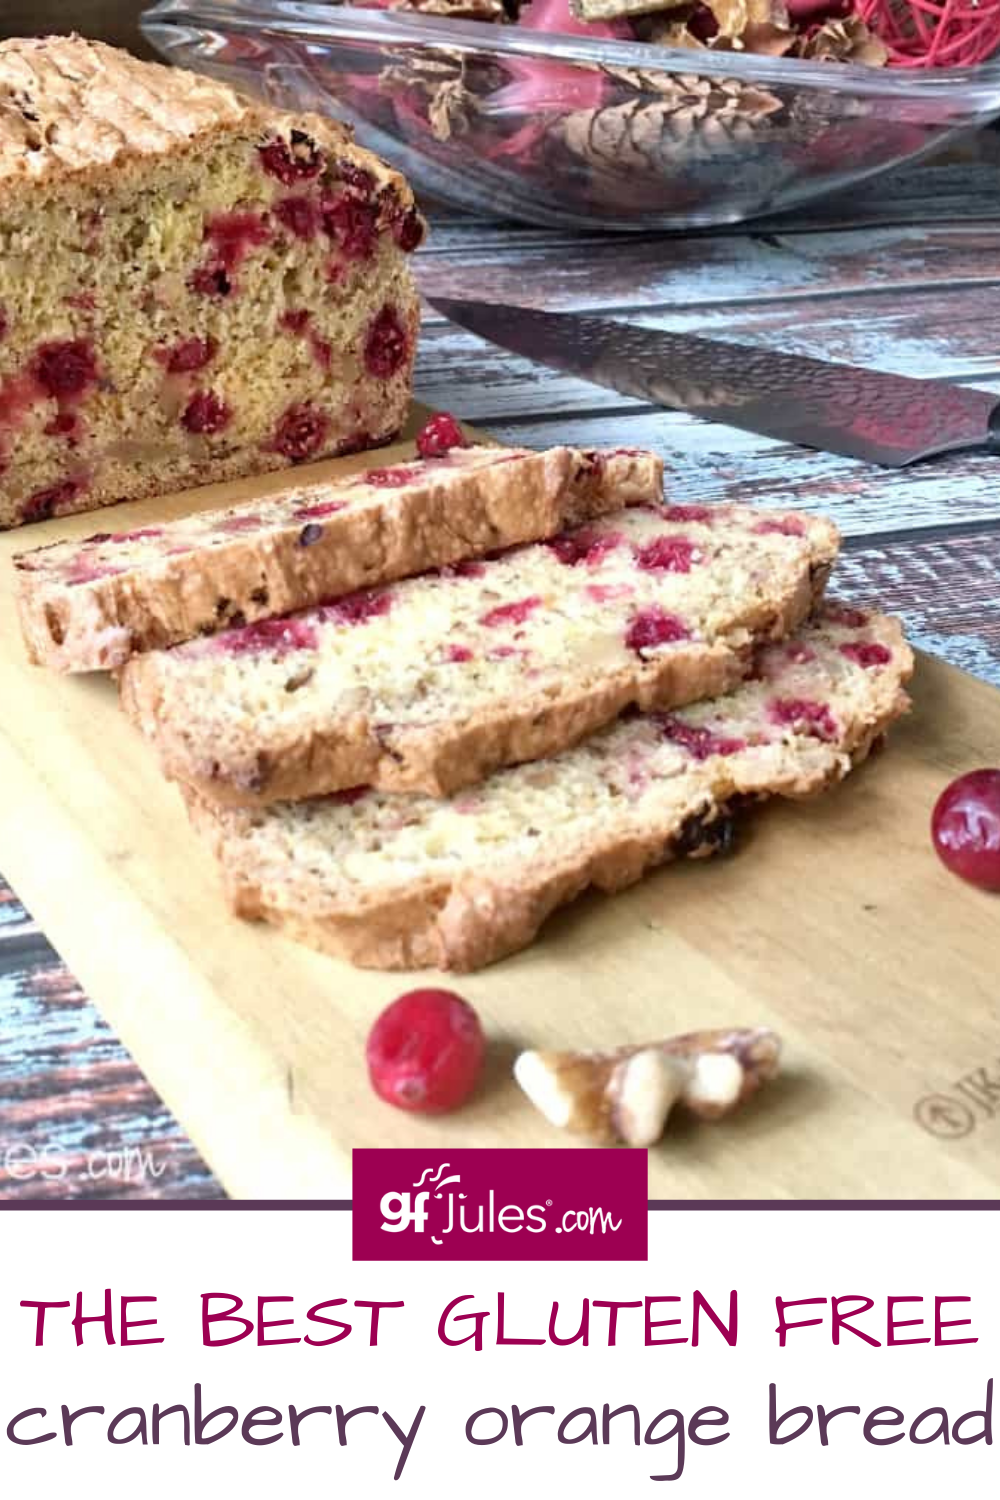 Gluten Free Cranberry Orange Moist Not Gritty W Gfjules 1 Rated Flour Recipe In 2020 Cranberry Orange Bread Cranberry Orange Gluten Free